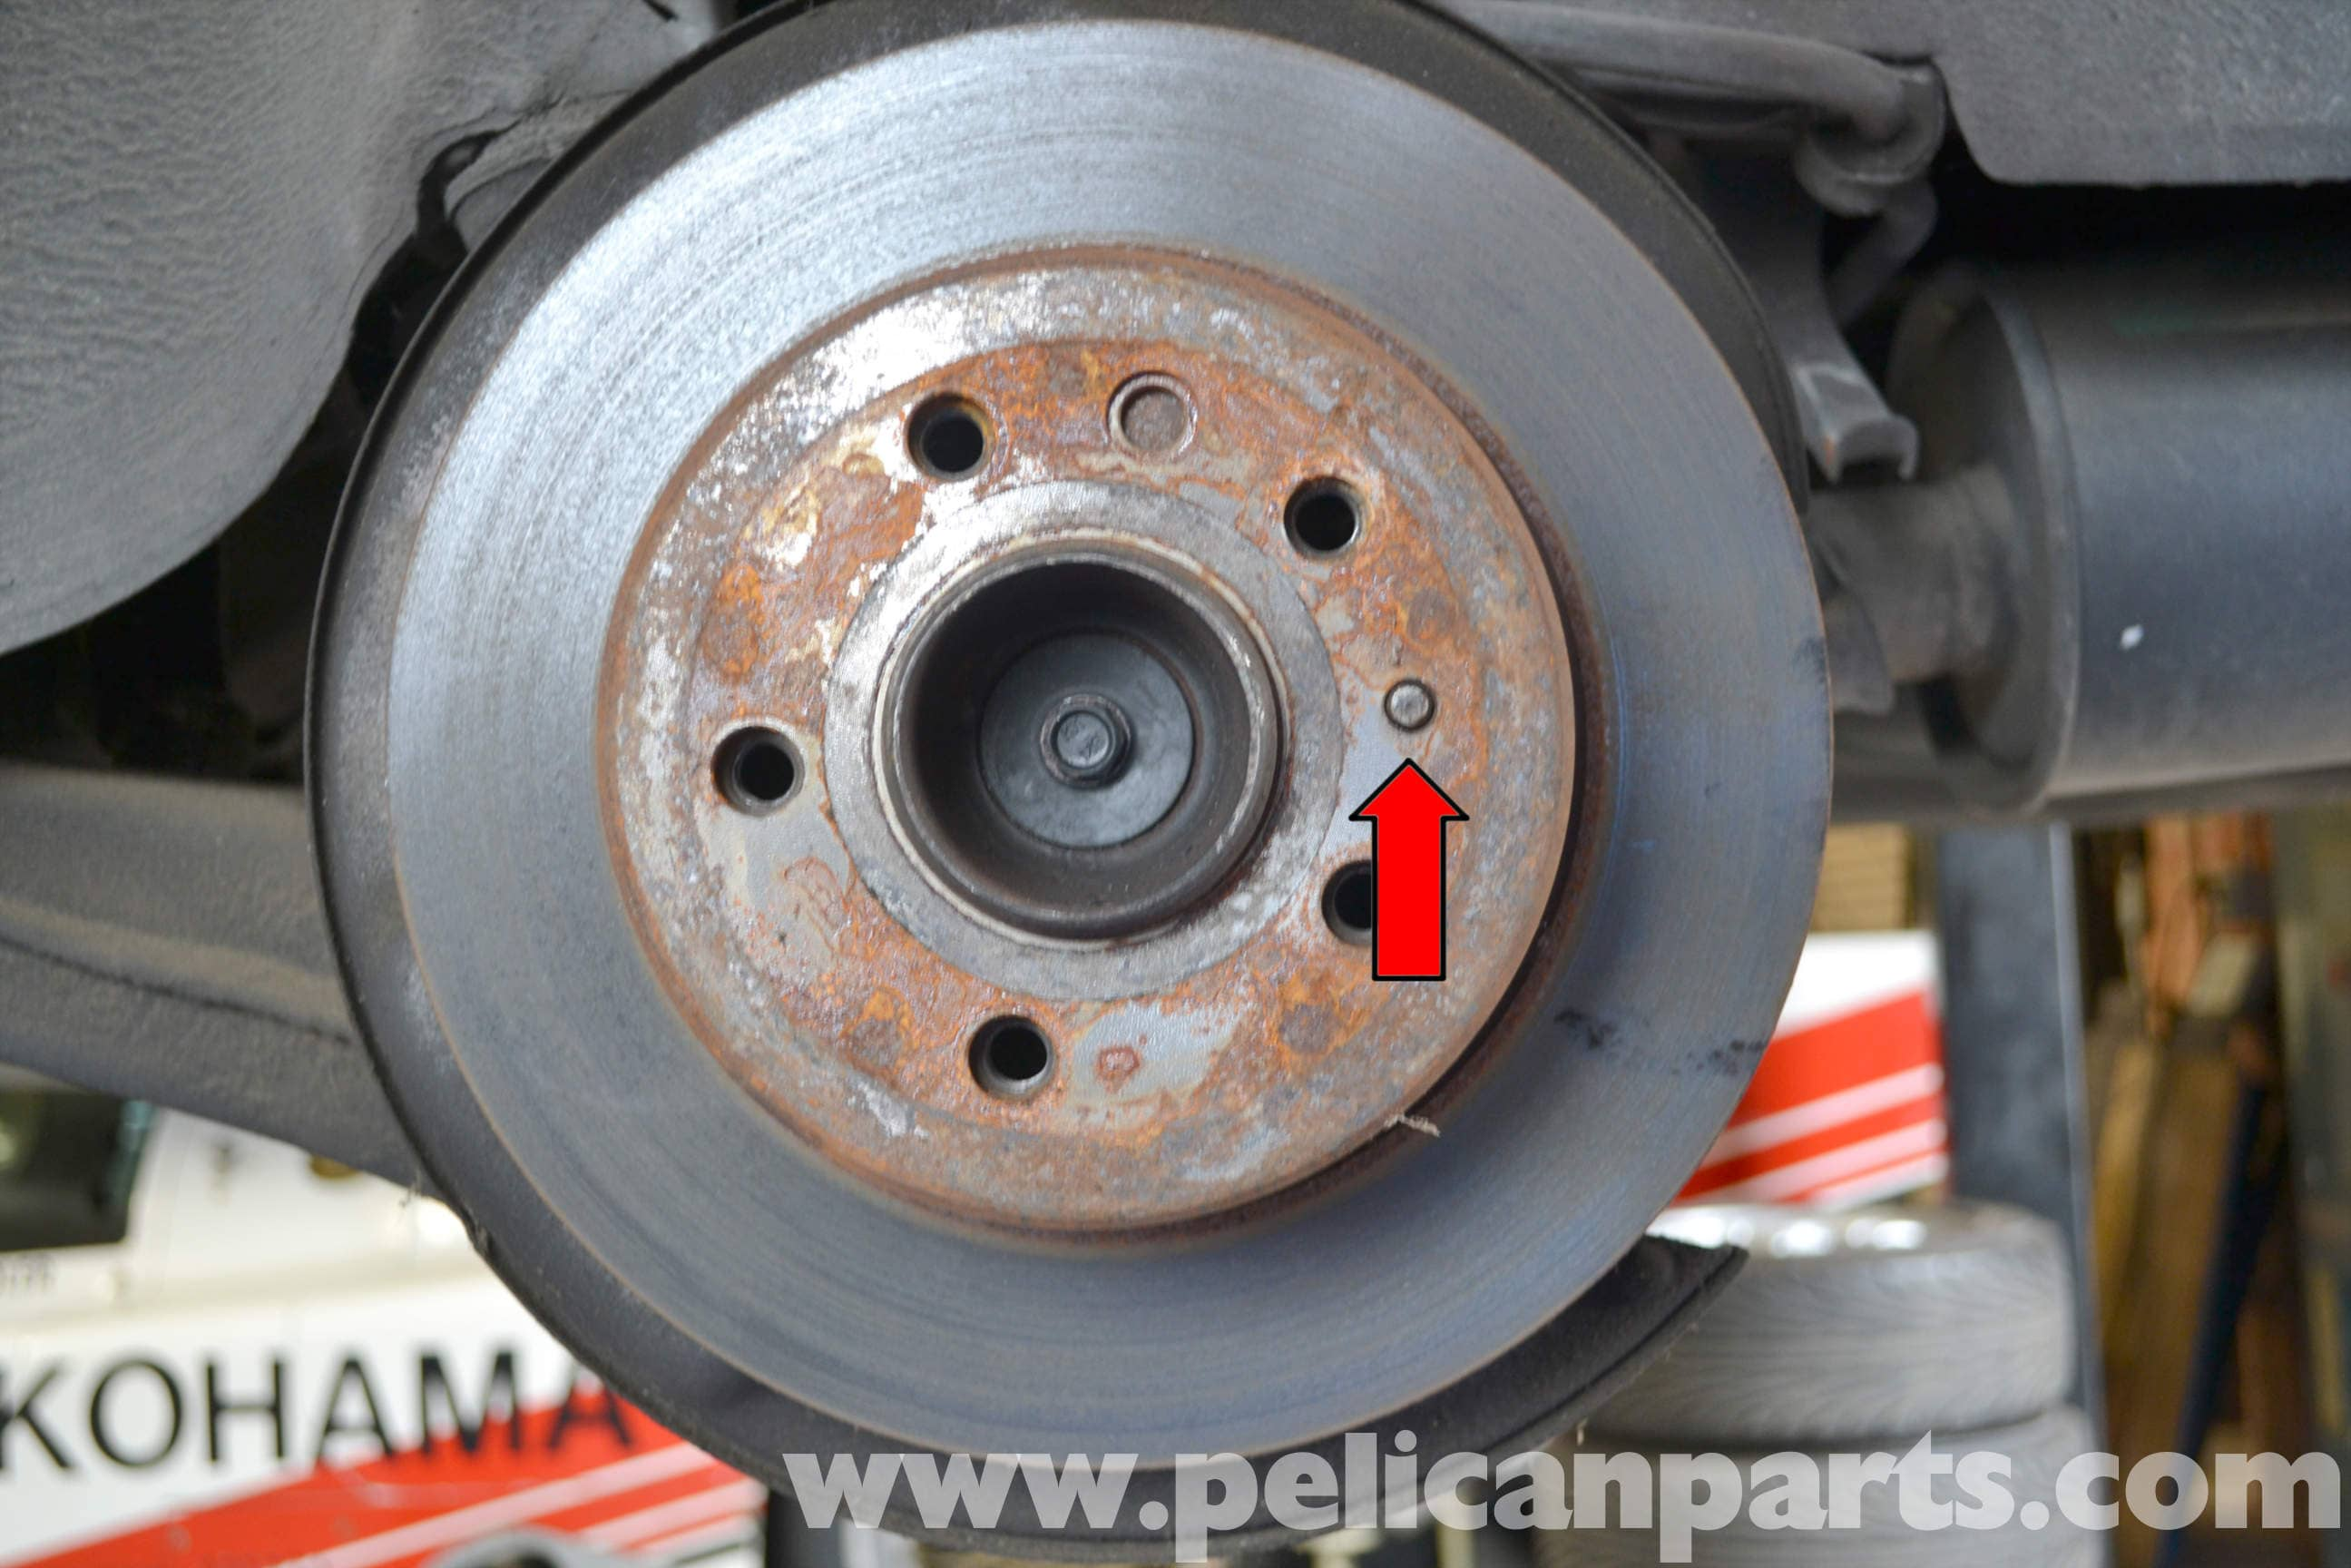 Mercedes benz w123 rear brake rotor or disc replacement for Mercedes benz rotors replacement